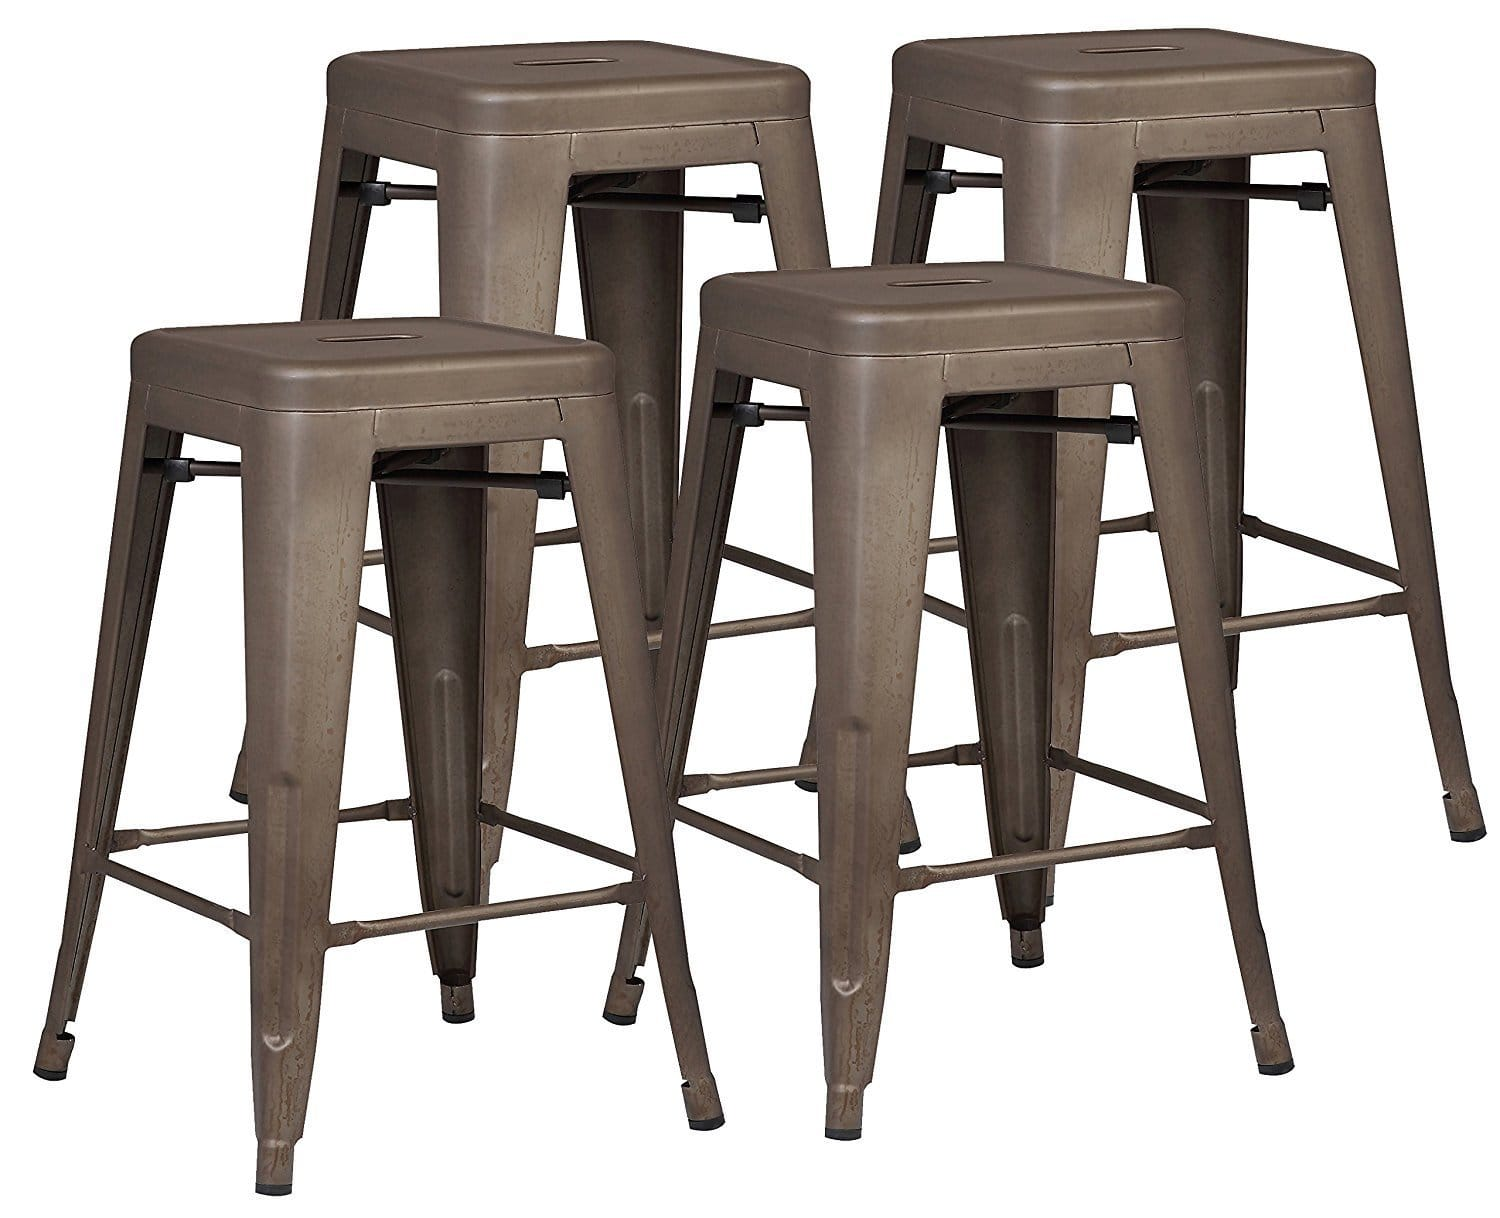 Set of 4 Loft Style 24 in. Stackable Metal Counter Stools (Various Colors) $86.18 AC+FS@Amazon.